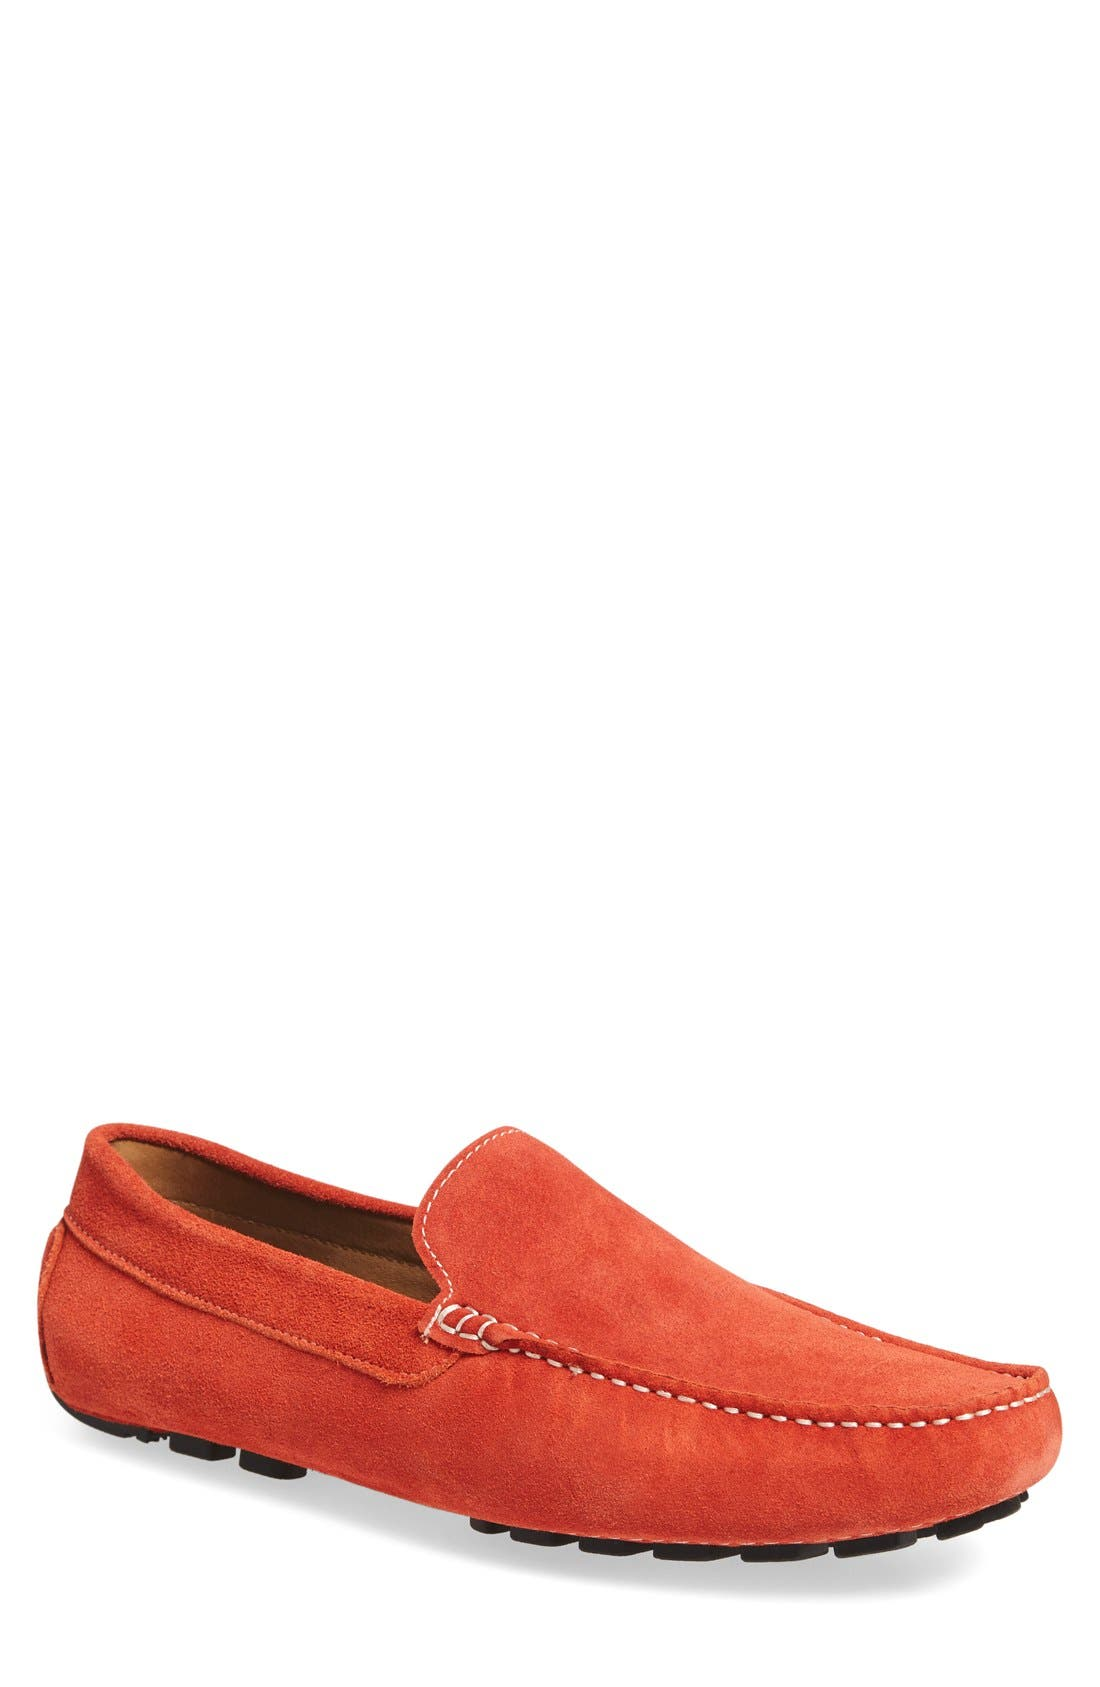 'Picasso' Slip-On Driver,                         Main,                         color, Orange Leather